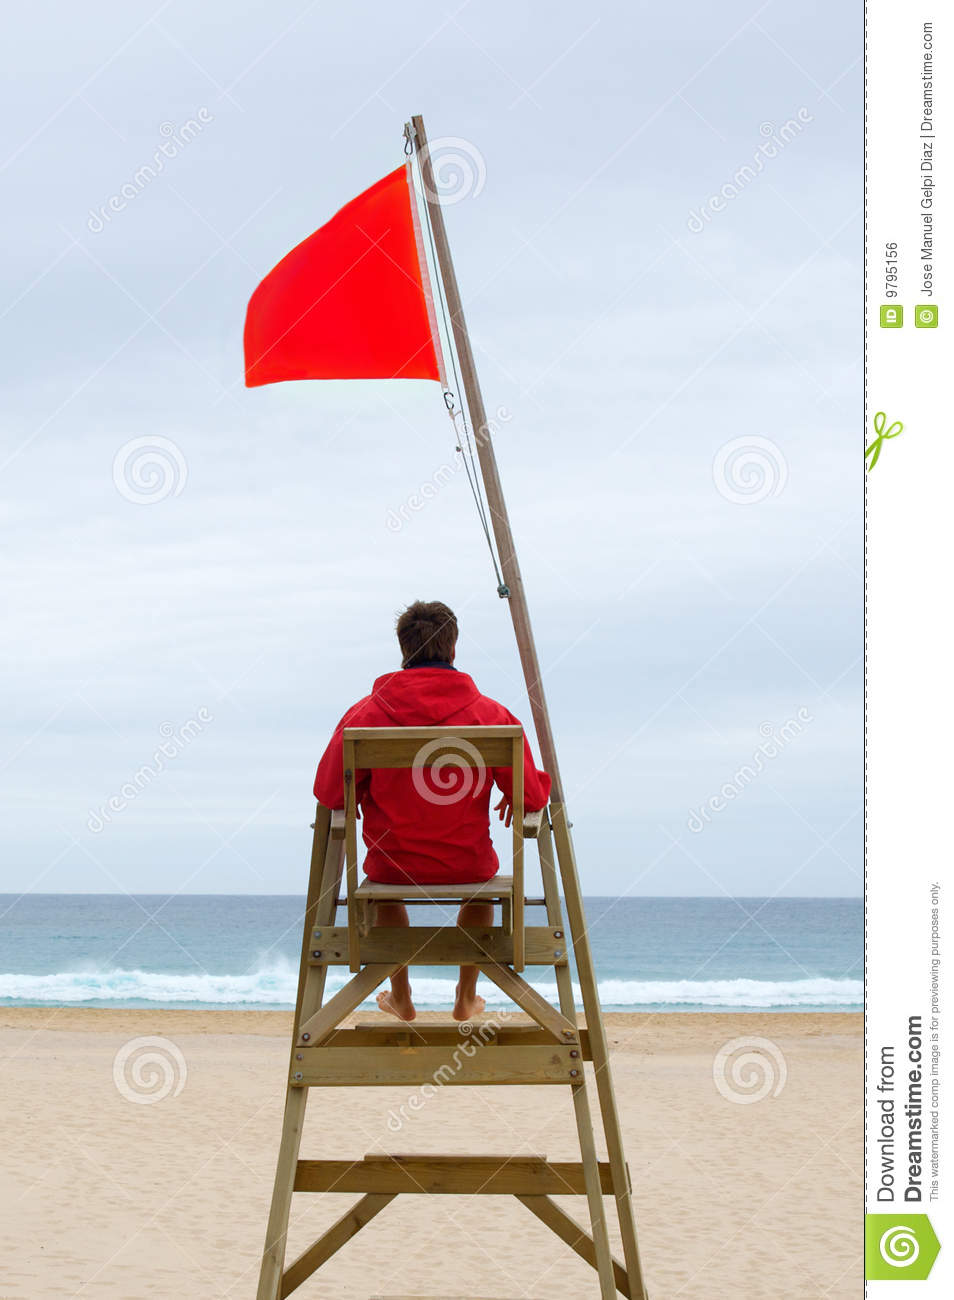 Lifeguard Sitting In His Chair Royalty Free Stock Image